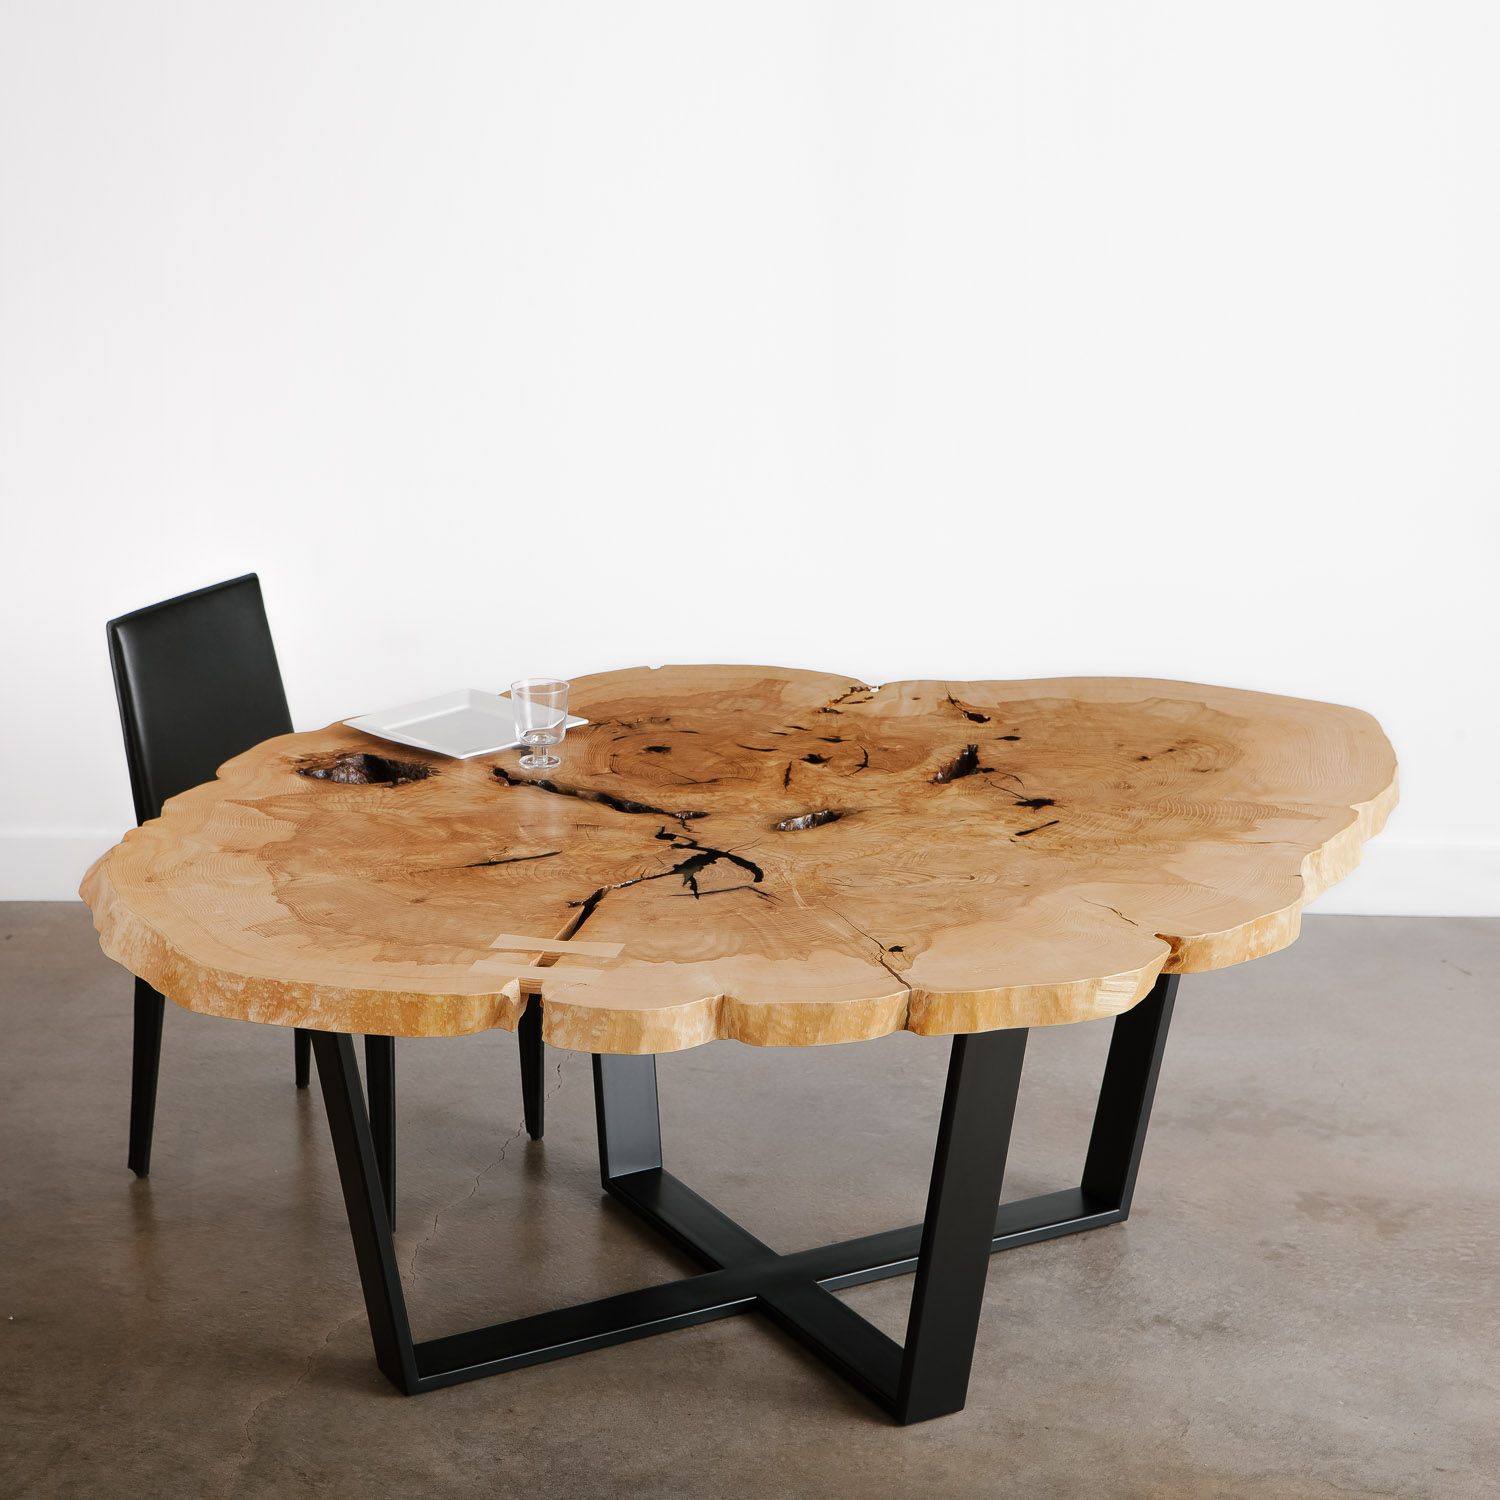 Large modern round tree trunk live edge dining table with natural knots and voids